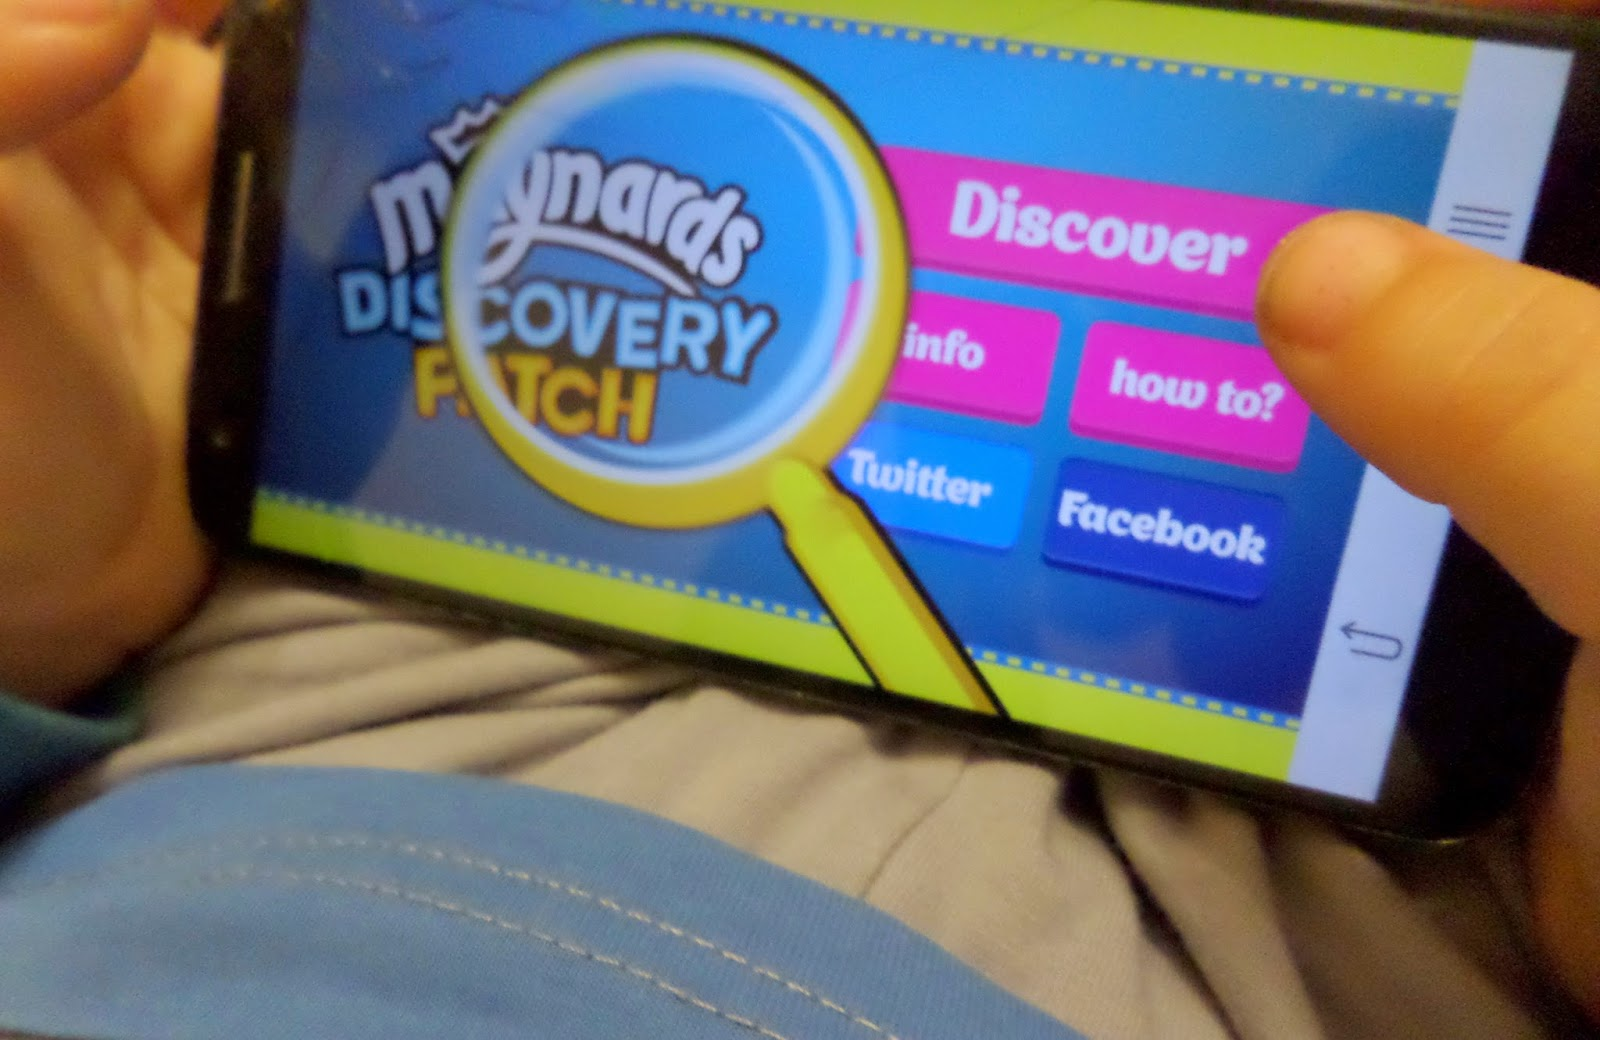 #DiscoveryPatch, educational app, technology